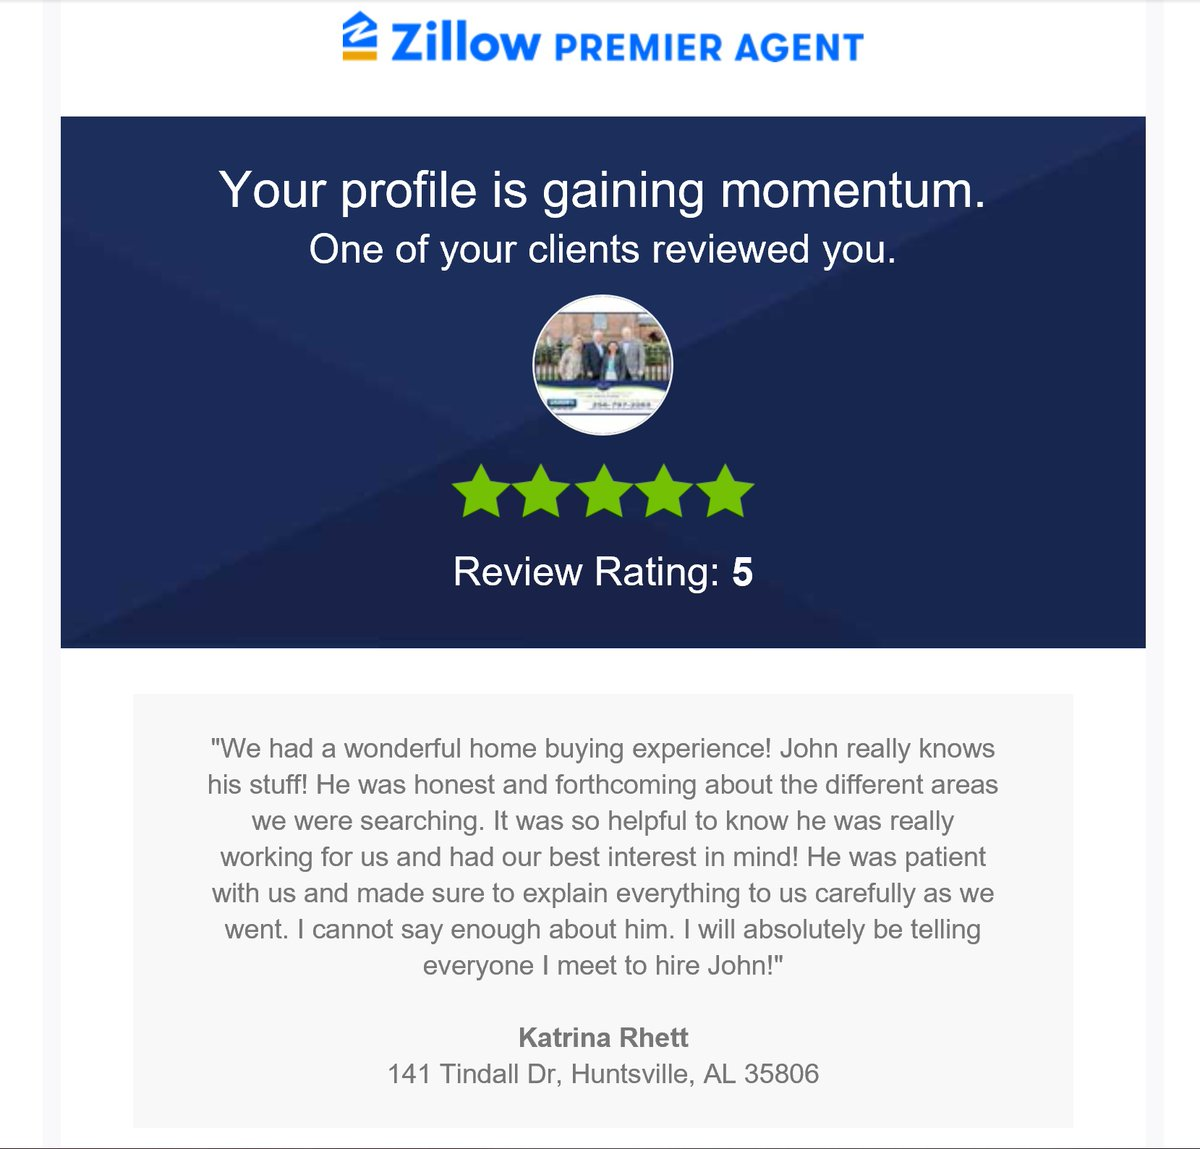 Some other #Zillow reviews from our past clients!  We are for ever #Thankful  . . . Now, let's find more #Realestateproperties for sale for our current clients! #HuntsvilleAlabama #Realestate #TheBrooksFamilyOfRealtorspic.twitter.com/HujyD8Aixy